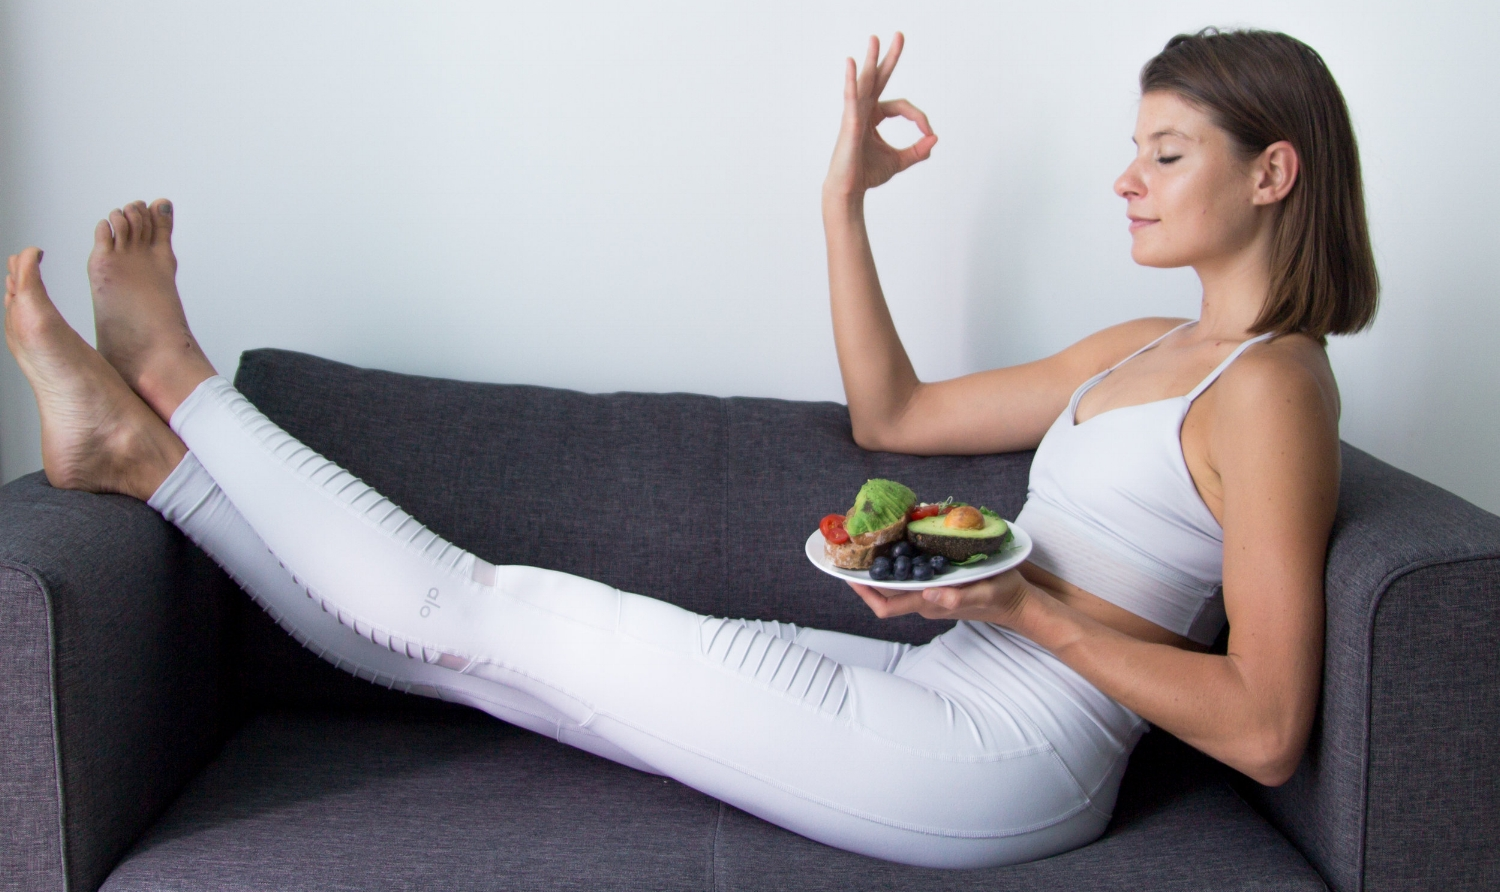 Get Healthy! - I have always believed that Health Is Wealth. There is nothing more important than being able to go through life enjoying it fully because you're not restricted by ailments or discomfort. If you're struggling to be your best self, I can get you back on track through my health coaching program.